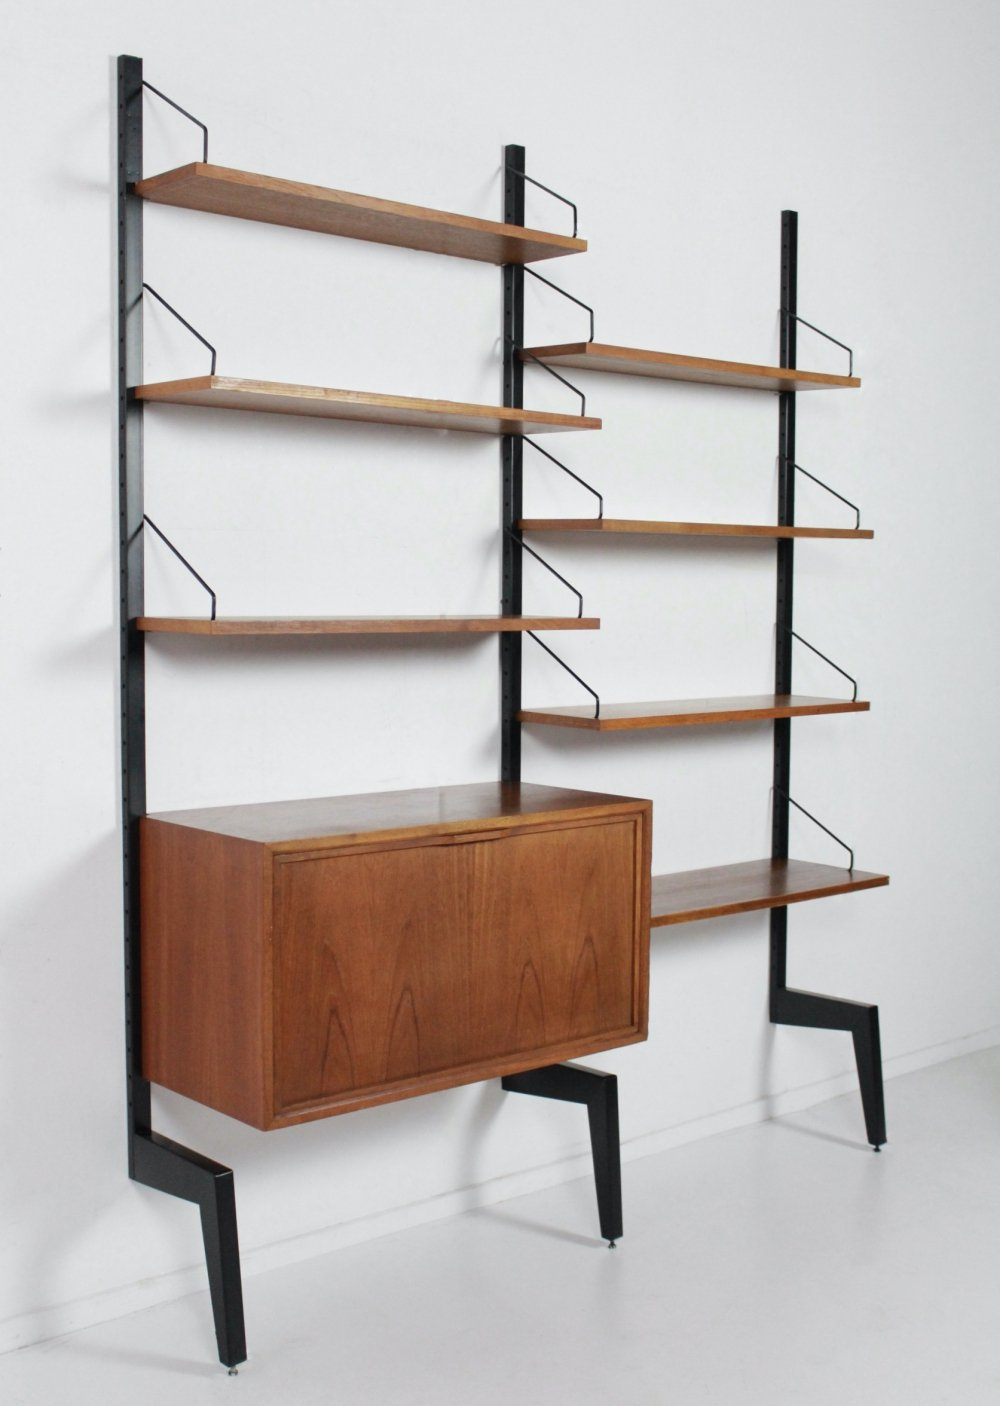 Royal System wall unit by Poul Cadovius for Cado Denmark, 1960s